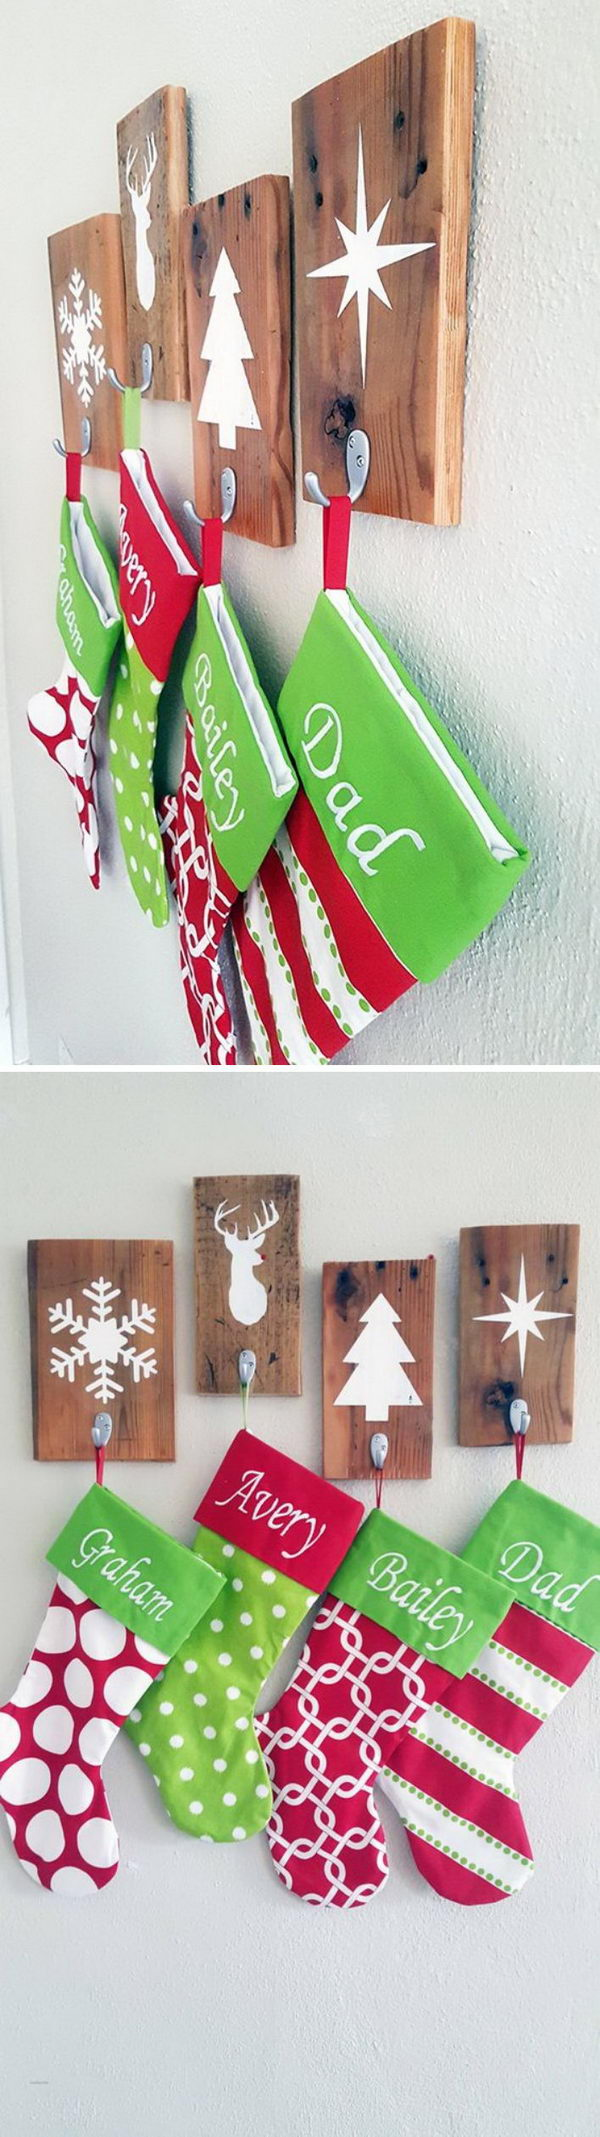 DIY Christmas Stocking Holder Wooden Set.